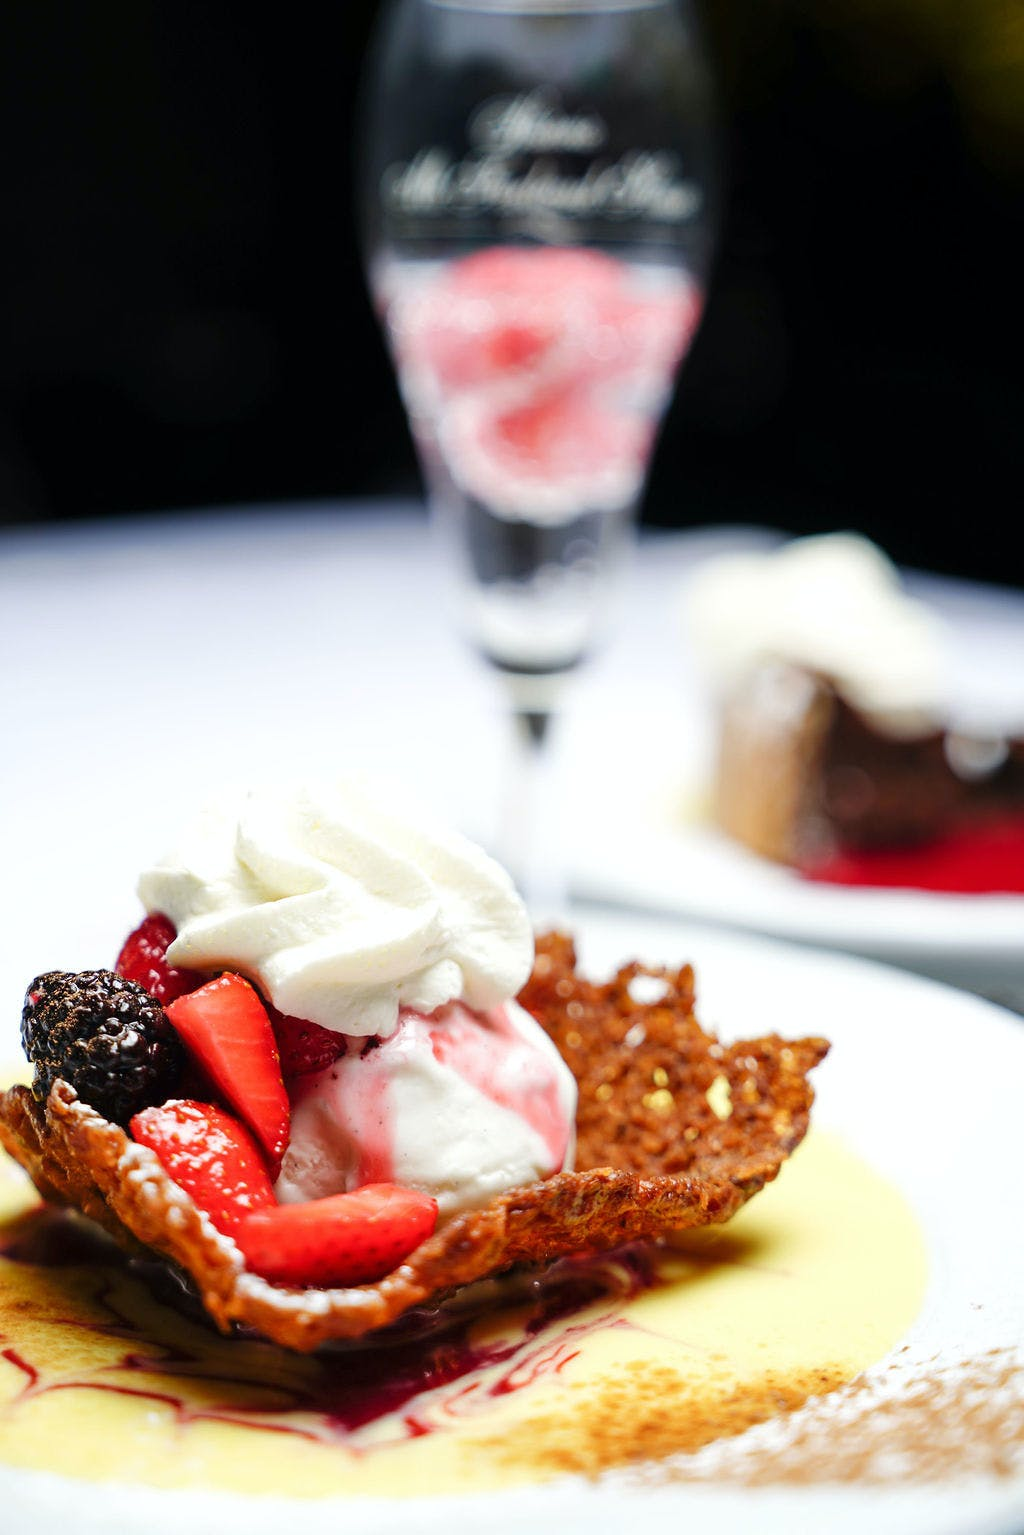 a close up of a chocolate dessert topped with whipped cream and strawberries and blueberries